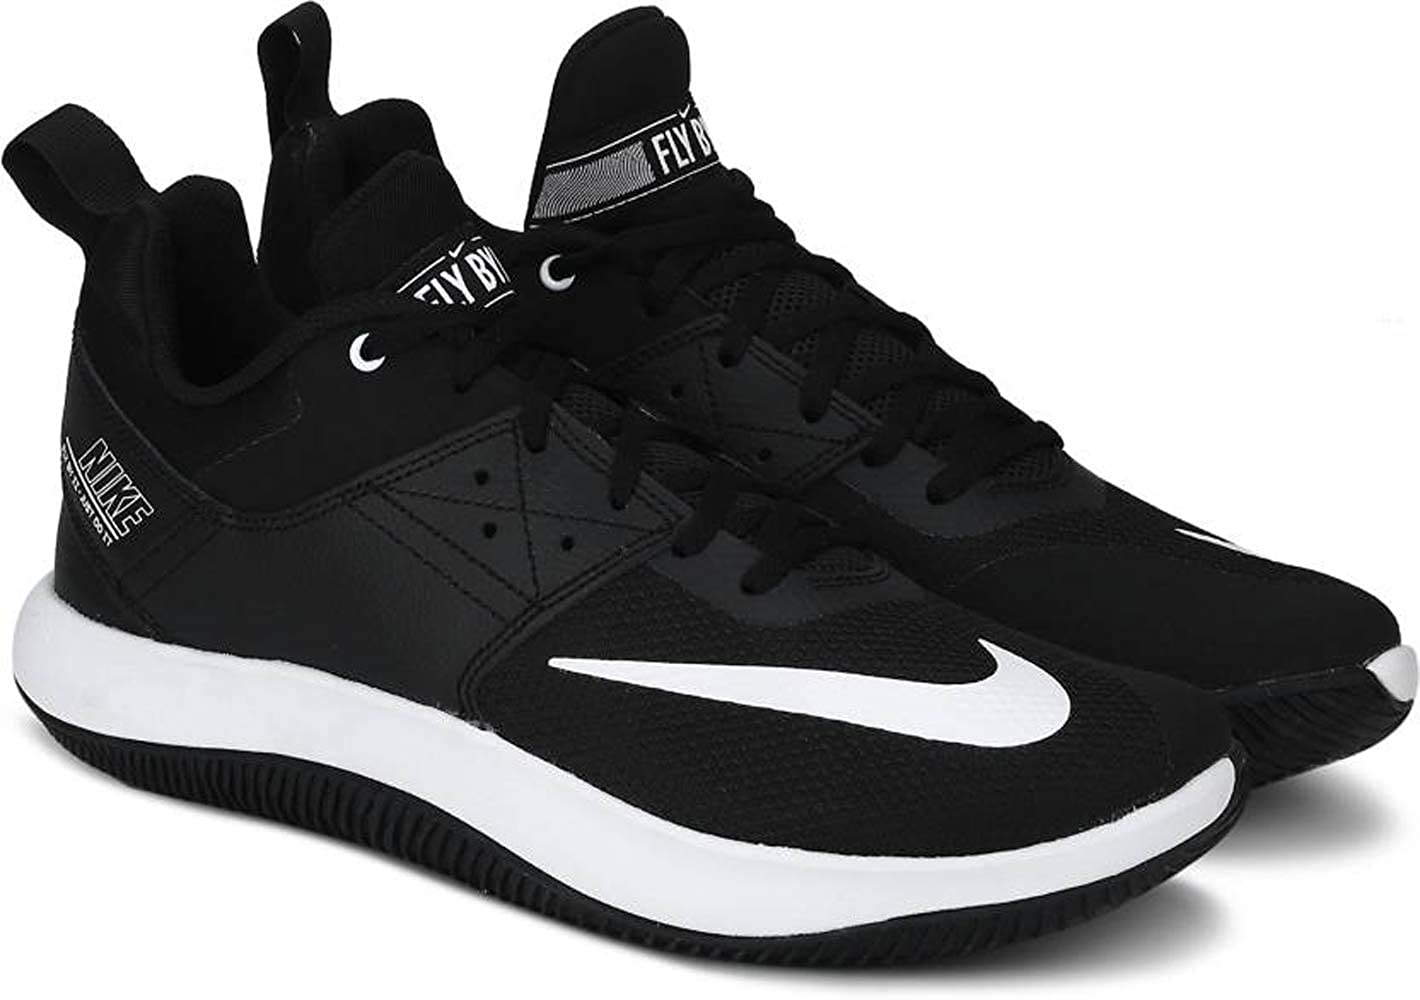 bb3cb0ea52c Nike Men s Fly.by Low II Black-White Basketball Shoes (AJ5902-011)  Buy  Online at Low Prices in India - Amazon.in